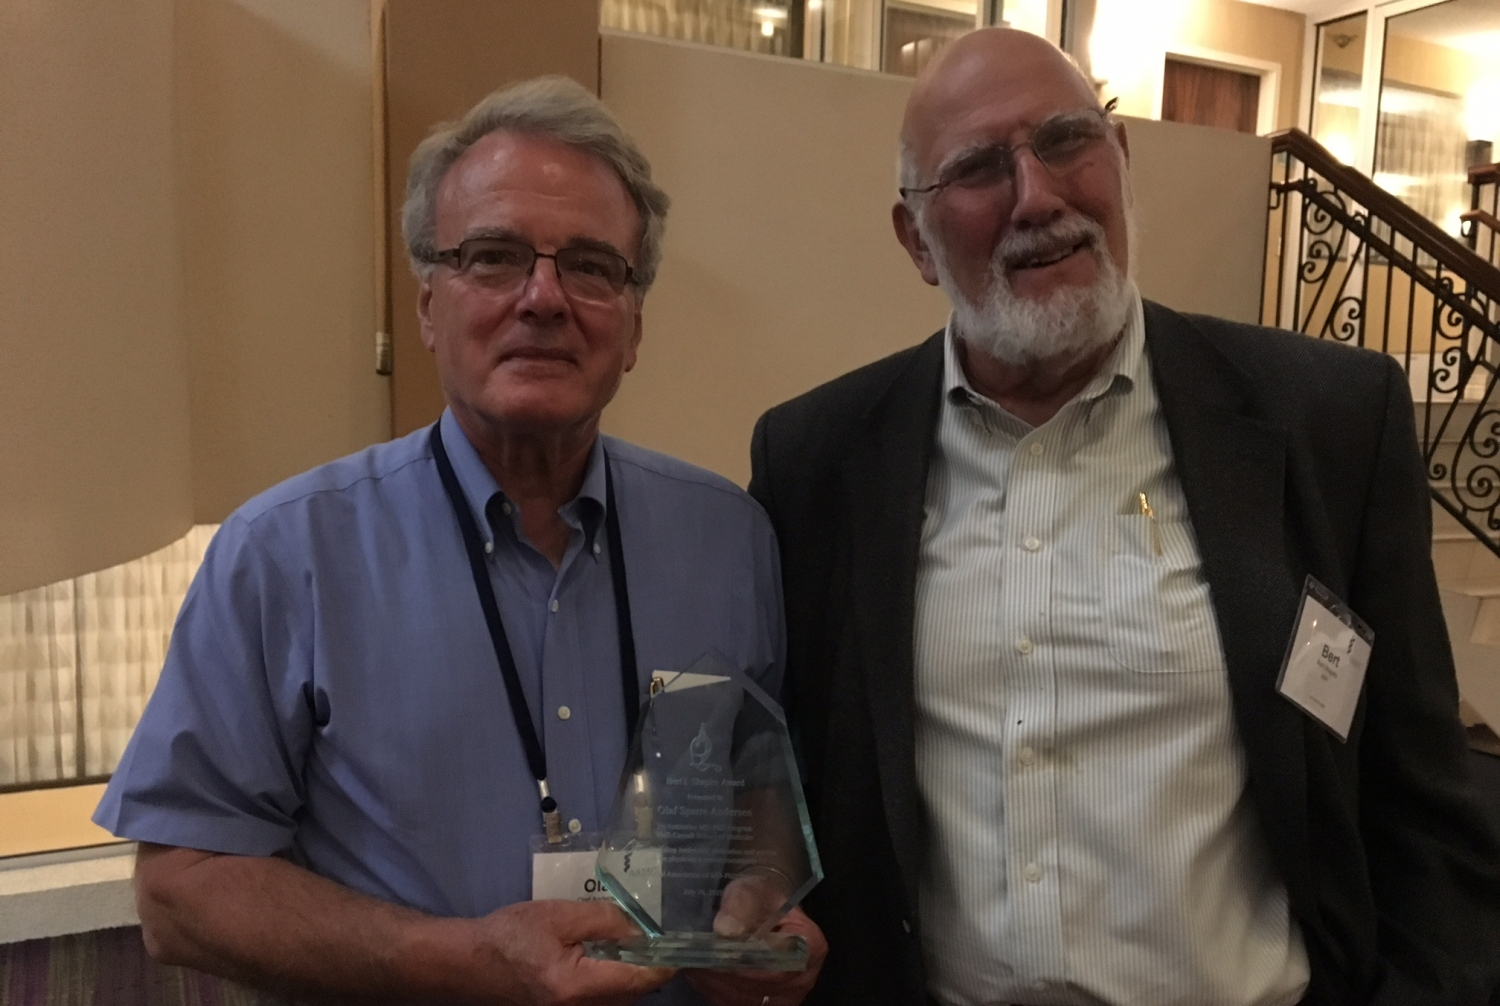 Dr. Olaf Andersen, left, with Dr. Bert I. Shapiro. Photo credit: Dr. Ruth Gotian